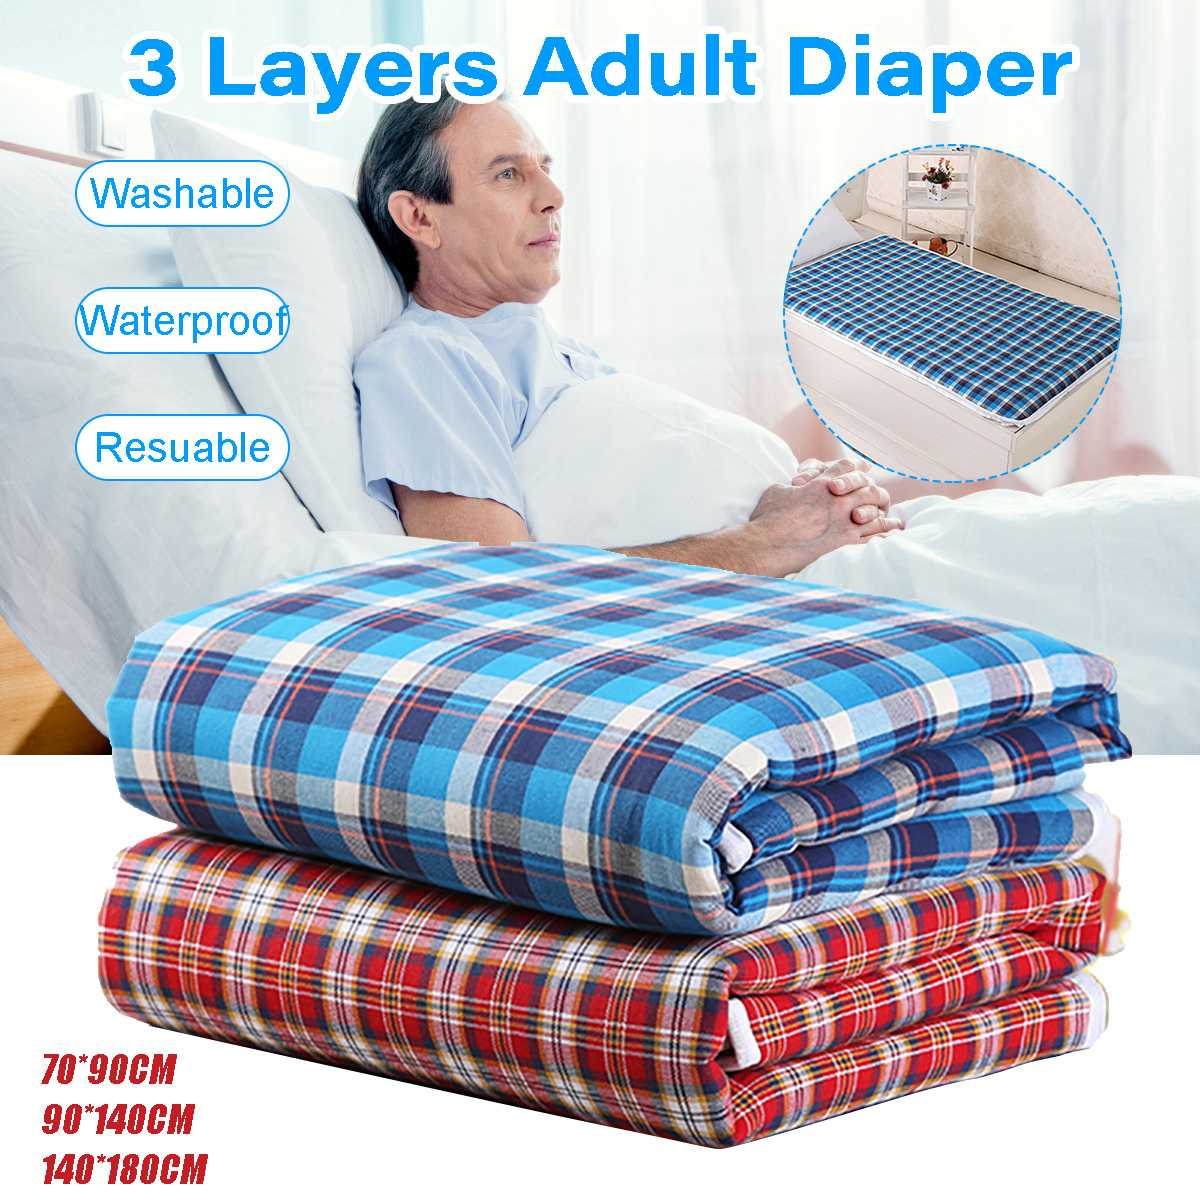 Kids Adult Mattress Cover Washable Reusable Protector Waterproof Underpad Bed Pad For Incontinence Patient Pad Cover Mattress image